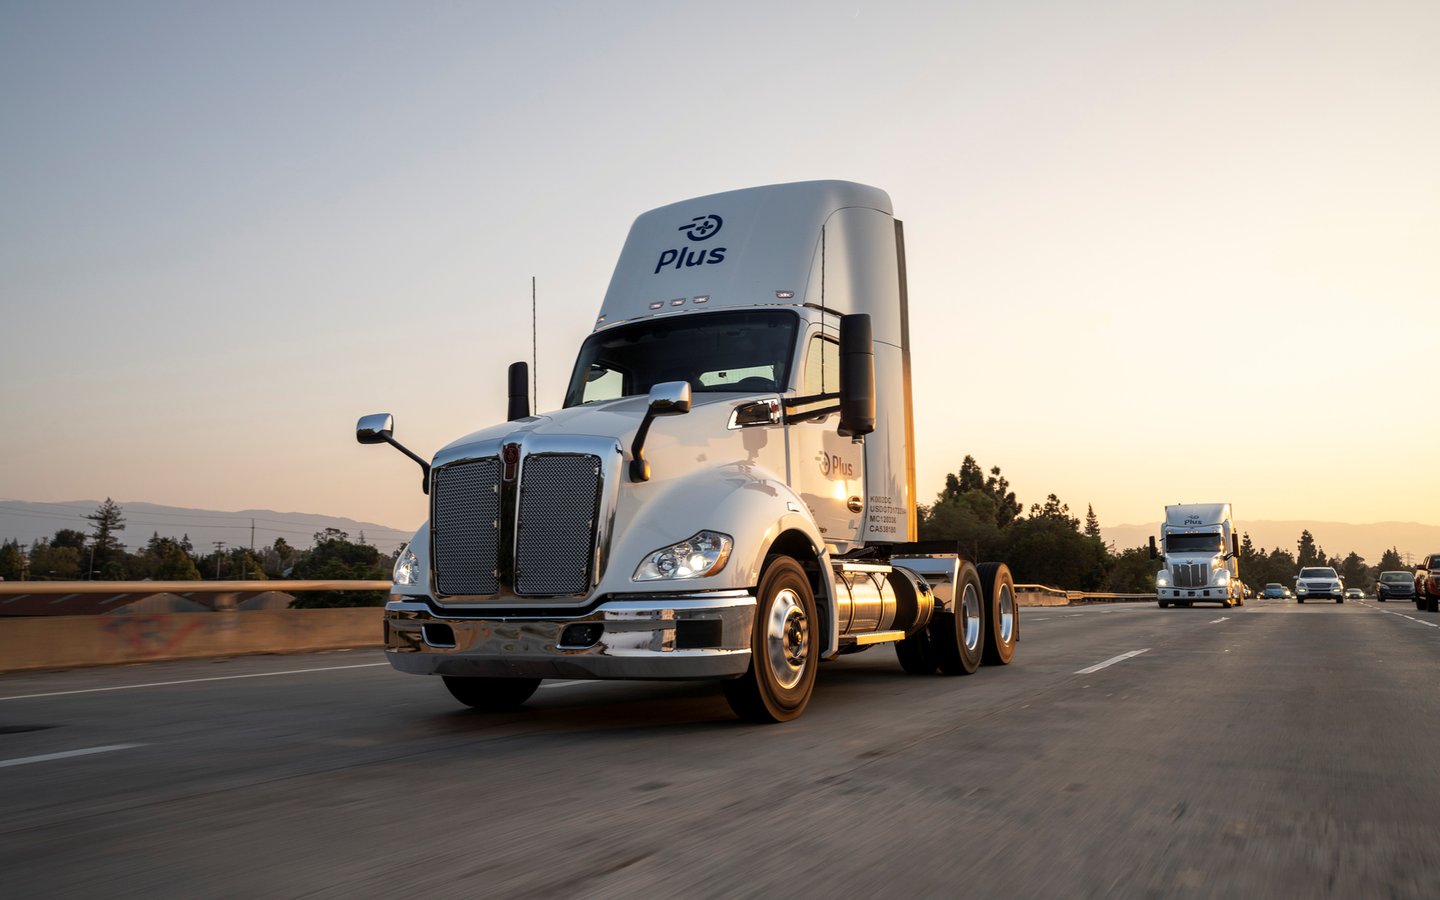 Plus, a provider of self-driving truck technology founded in 2016, recently completed an additional $200 million round of funding.